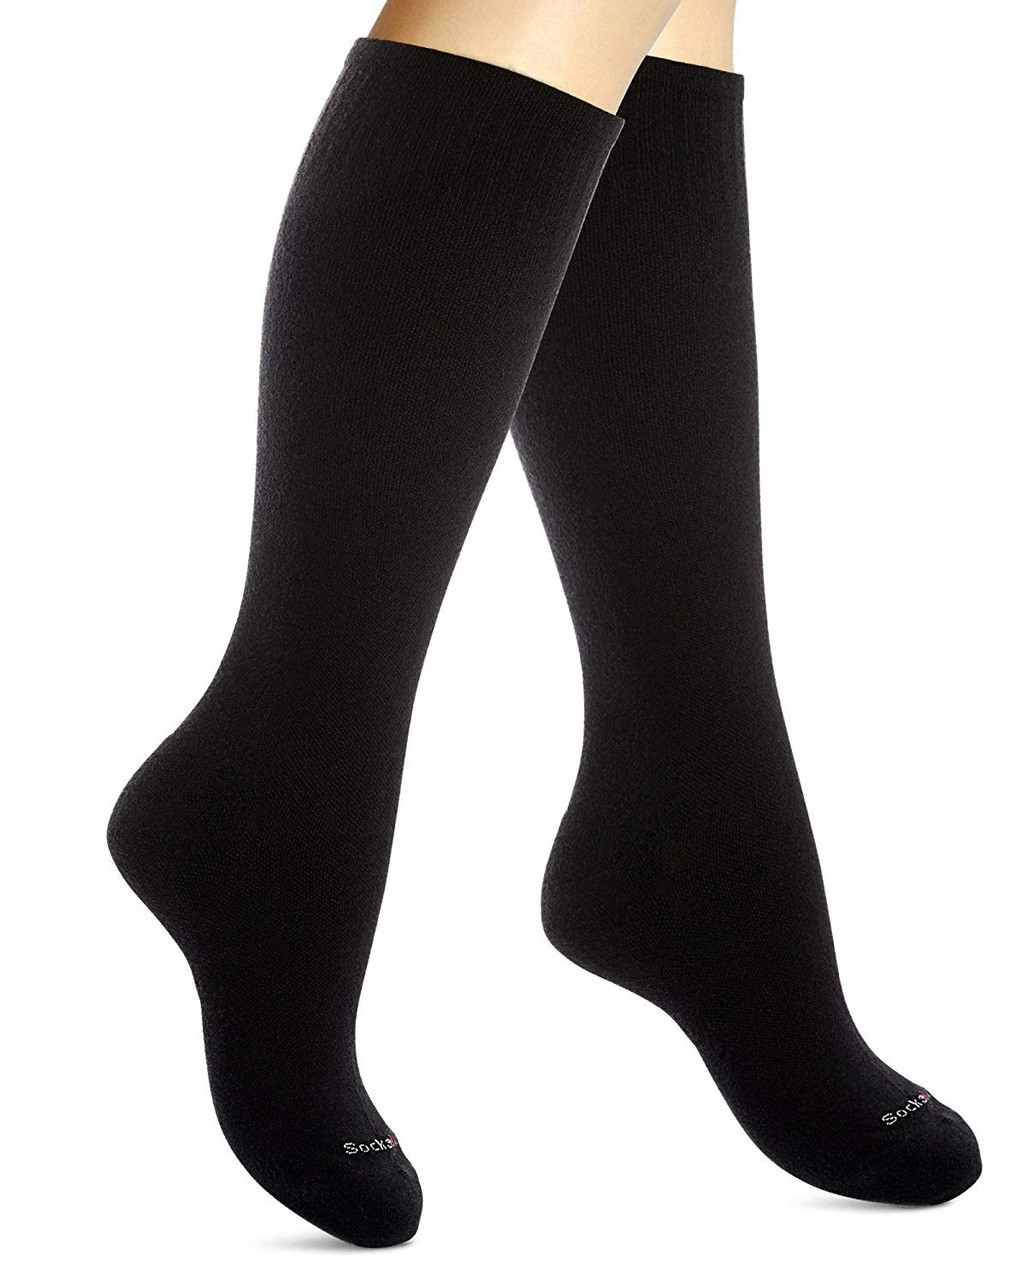 2ca2d04b02 Medical Compression Socks for Men - BLACK - COTTON SIZE: MB-RCM STRENGTH: